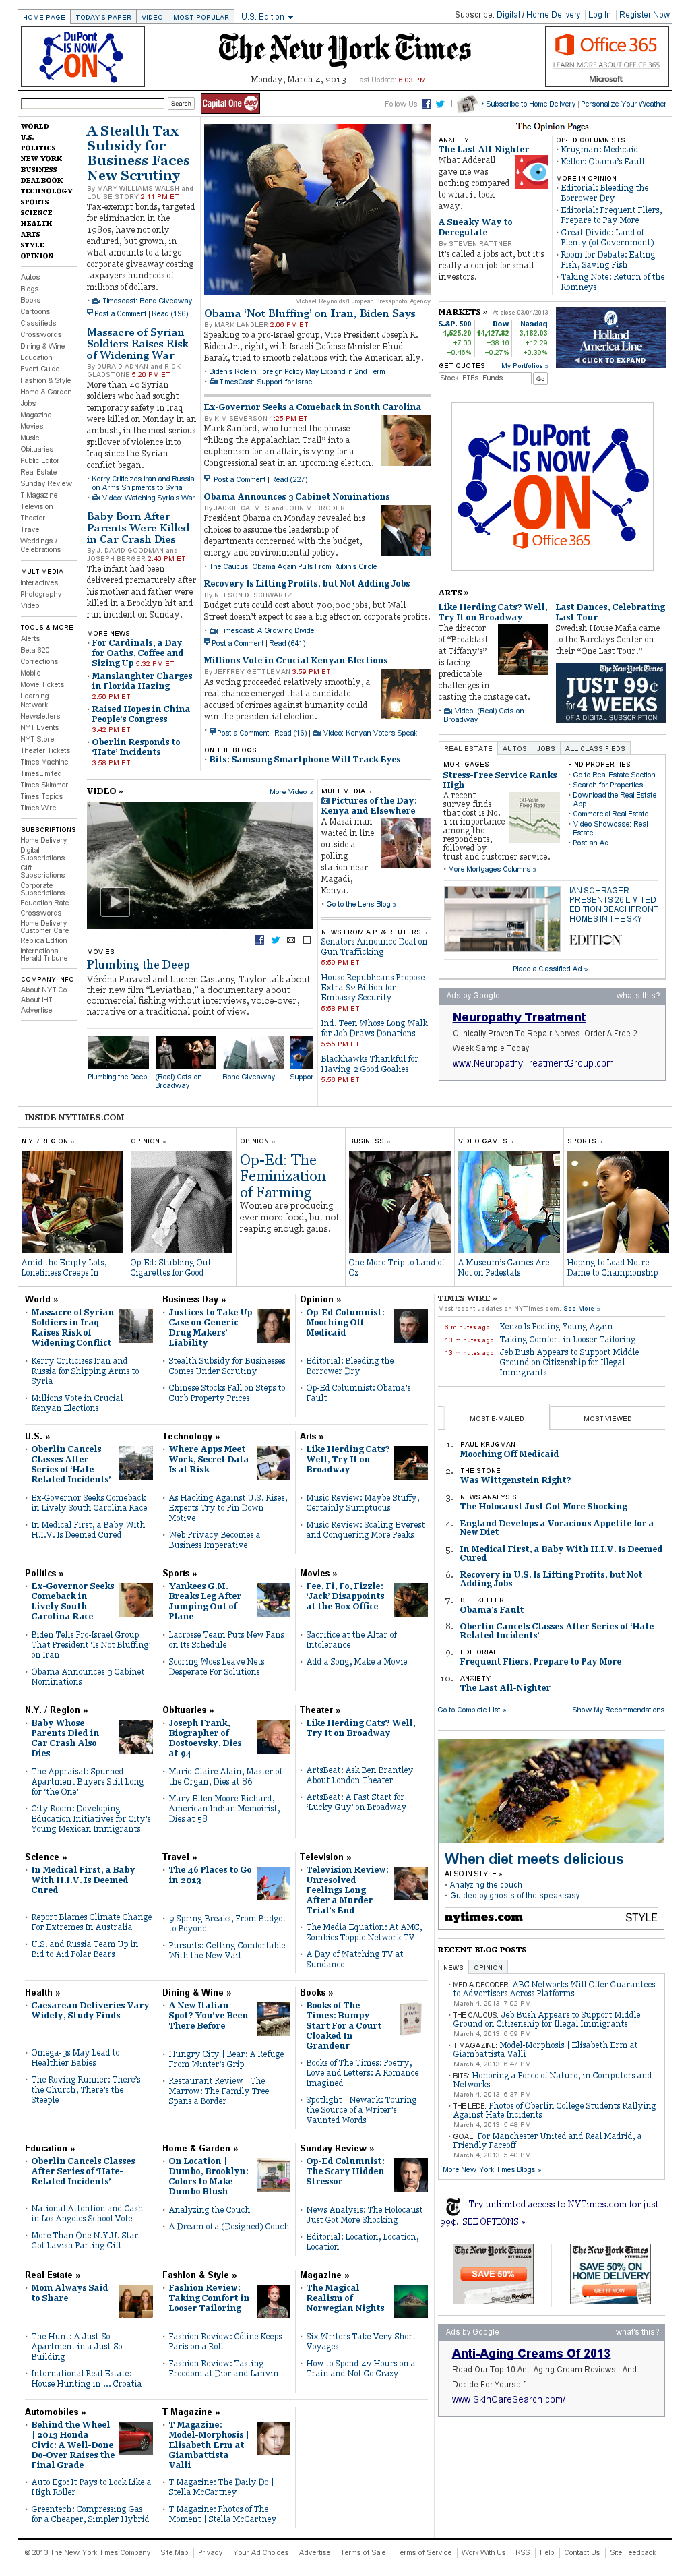 The New York Times at Tuesday March 5, 2013, 12:17 a.m. UTC